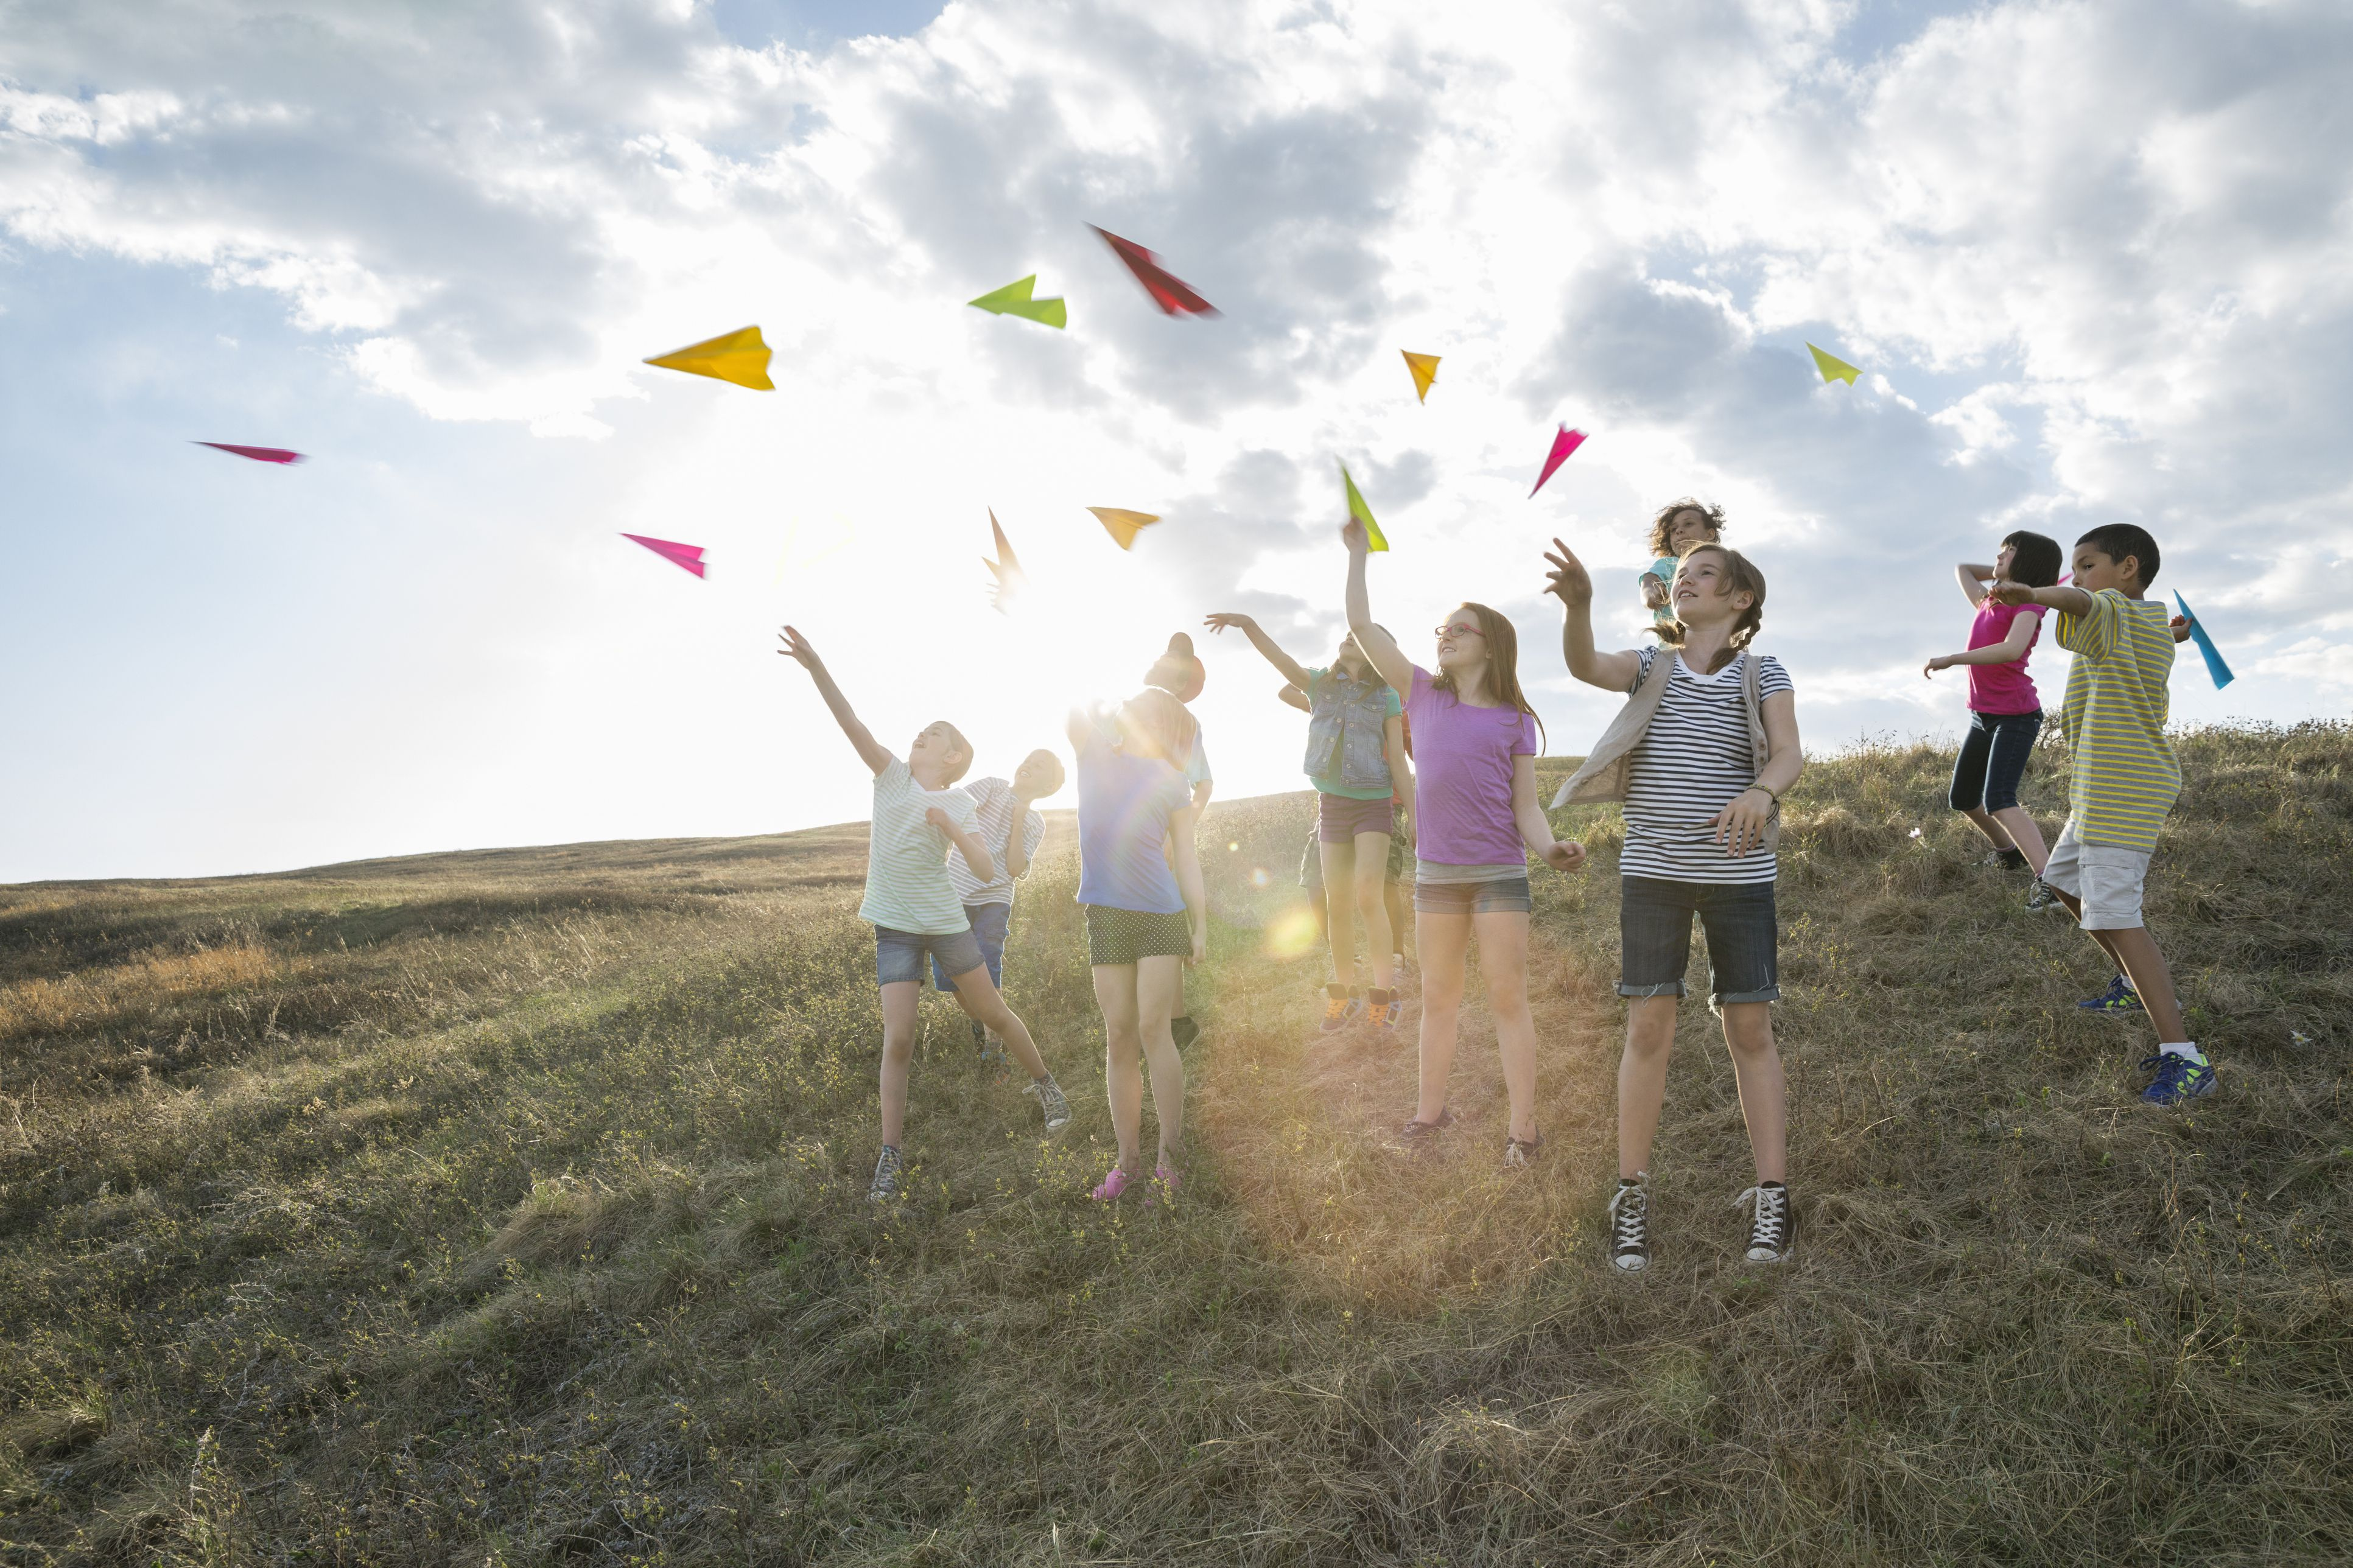 Group of kids outdoors throwing paper airplanes